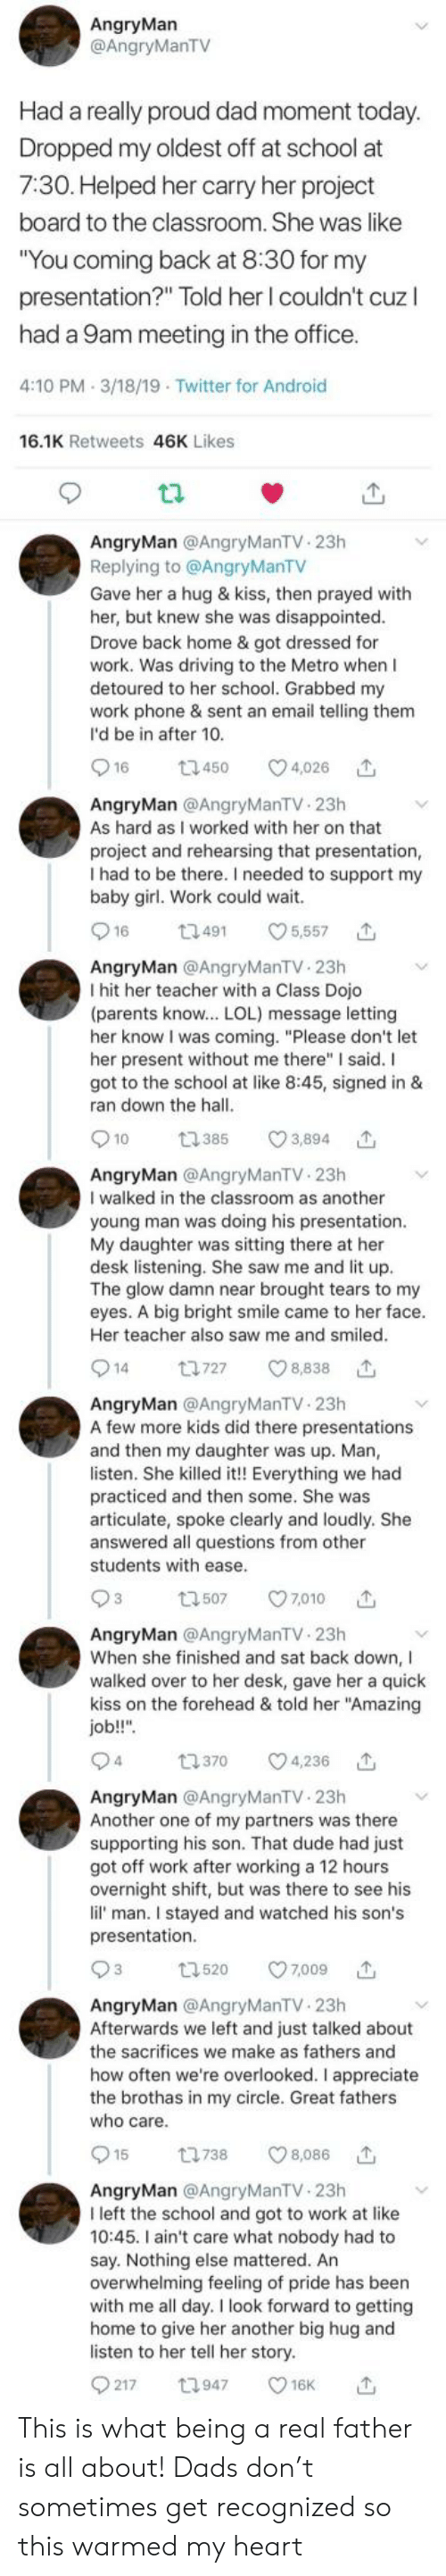 "presentations: AngryMan  @AngryManTV  Had a really proud dad moment today.  Dropped my oldest off at school at  7:30. Helped her carry her project  board to the classroom. She was like  ""You coming back at 8:30 for my  presentation?"" Told her I couldn't cuz  had a 9am meeting in the office.  4:10 PM 3/18/19 Twitter for Android  16.1K Retweets 46K Likes  AngryMan @AngryManTV 23h  Replying to @AngryManTV  Gave her a hug & kiss, then prayed with  her, but knew she was disappointed.  Drove back home & got dressed for  work. Was driving to the Metro when I  detoured to her school. Grabbed my  work phone & sent an email telling them  I'd be in after 10.  16  4,026  t1450  AngryMan @AngryManTV 23h  As hard as I worked with her on that  project and rehearsing that presentation,  I had to be there. I needed to support my  baby girl. Work could wait.  16  t3491  5,557  AngryMan @AngryManTV 23h  I hit her teacher with a Class Dojo  (parents know... LOL) message letting  her know I was coming. ""Please don't let  her present without me there"" I said. I  got to the school at like 8:45, signed in &  ran down the hall.  3,894  10  t385  AngryMan @AngryManTV 23h  I walked in the classroom as another  young man was doing his presentation.  My daughter was sitting there at her  desk listening. She saw me and lit up.  The glow damn near brought tears to my  eyes. A big bright smile came to her face.  Her teacher also saw me and smiled.  14  8,838  t1727  AngryMan @AngryManTV 23h  A few more kids did there presentations  and then my daughter was up. Man,  listen. She killed it!! Everything we had  practiced and then some. She was  articulate, spoke clearly and loudly. She  answered all questions from other  students with ease  93  7010  t507  AngryMan @AngryManTV 23h  When she finished and sat back down, I  walked over to her desk, gave her a quick  kiss on the forehead & told her ""Amazing  job!!""  94  t.370  4,236  AngryMan @AngryManTV 23h  Another one of my partners was there  supporting his son. That dude had just  got off work after working a 12 hours  overnight shift, but was there to see his  lil' man. I stayed and watched his son's  presentation.  93  t.520  7,009  AngryMan @AngryManTV 23h  Afterwards we left and just talked about  the sacrifices we make as fathers and  how often we're overlooked. I appreciate  the brothas in my circle. Great fathers  who care.  15  t1738  8,086  AngryMan @AngryManTV 23h  I left the school and got to work at like  10:45. I ain't care what nobody had to  say. Nothing else mattered. An  overwhelming feeling of pride has been  with me all day. I look forward to getting  home to give her another big hug and  listen to her tell her story.  217  t1947  16K This is what being a real father is all about! Dads don't sometimes get recognized so this warmed my heart"